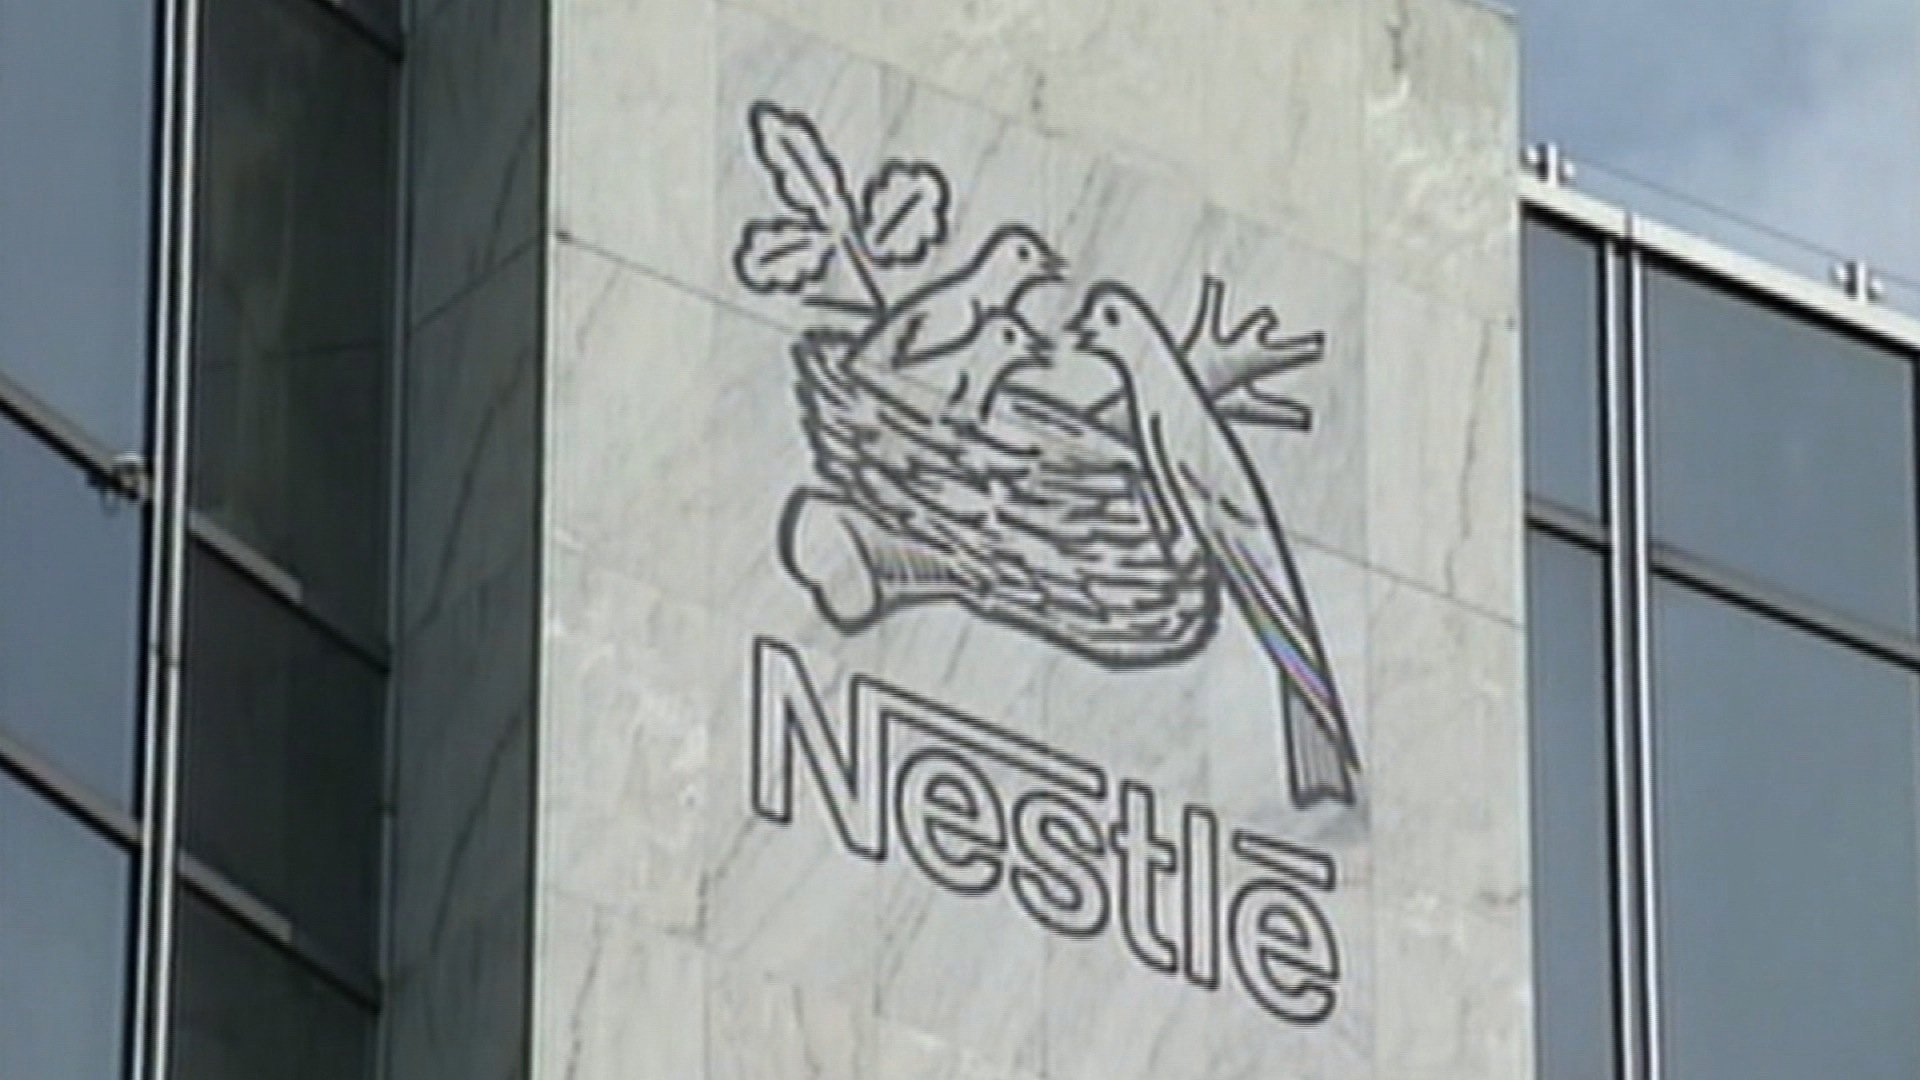 A framegrab of the Nestle sign at their office in Switzerland. (Credit: CNN)